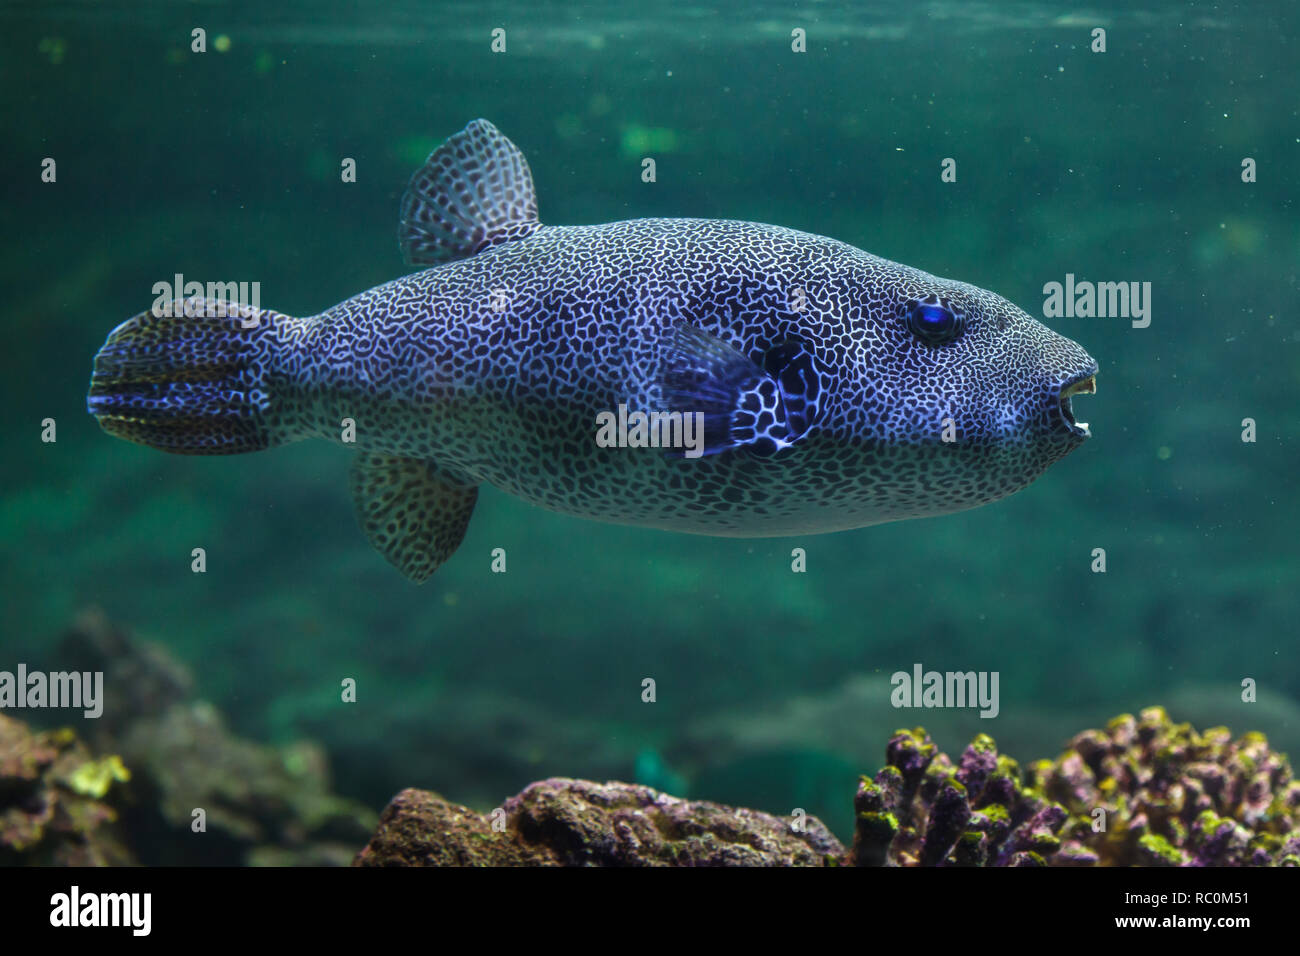 Stellate puffer (Arothron stellatus), also known as the starry toadfish. Stock Photo